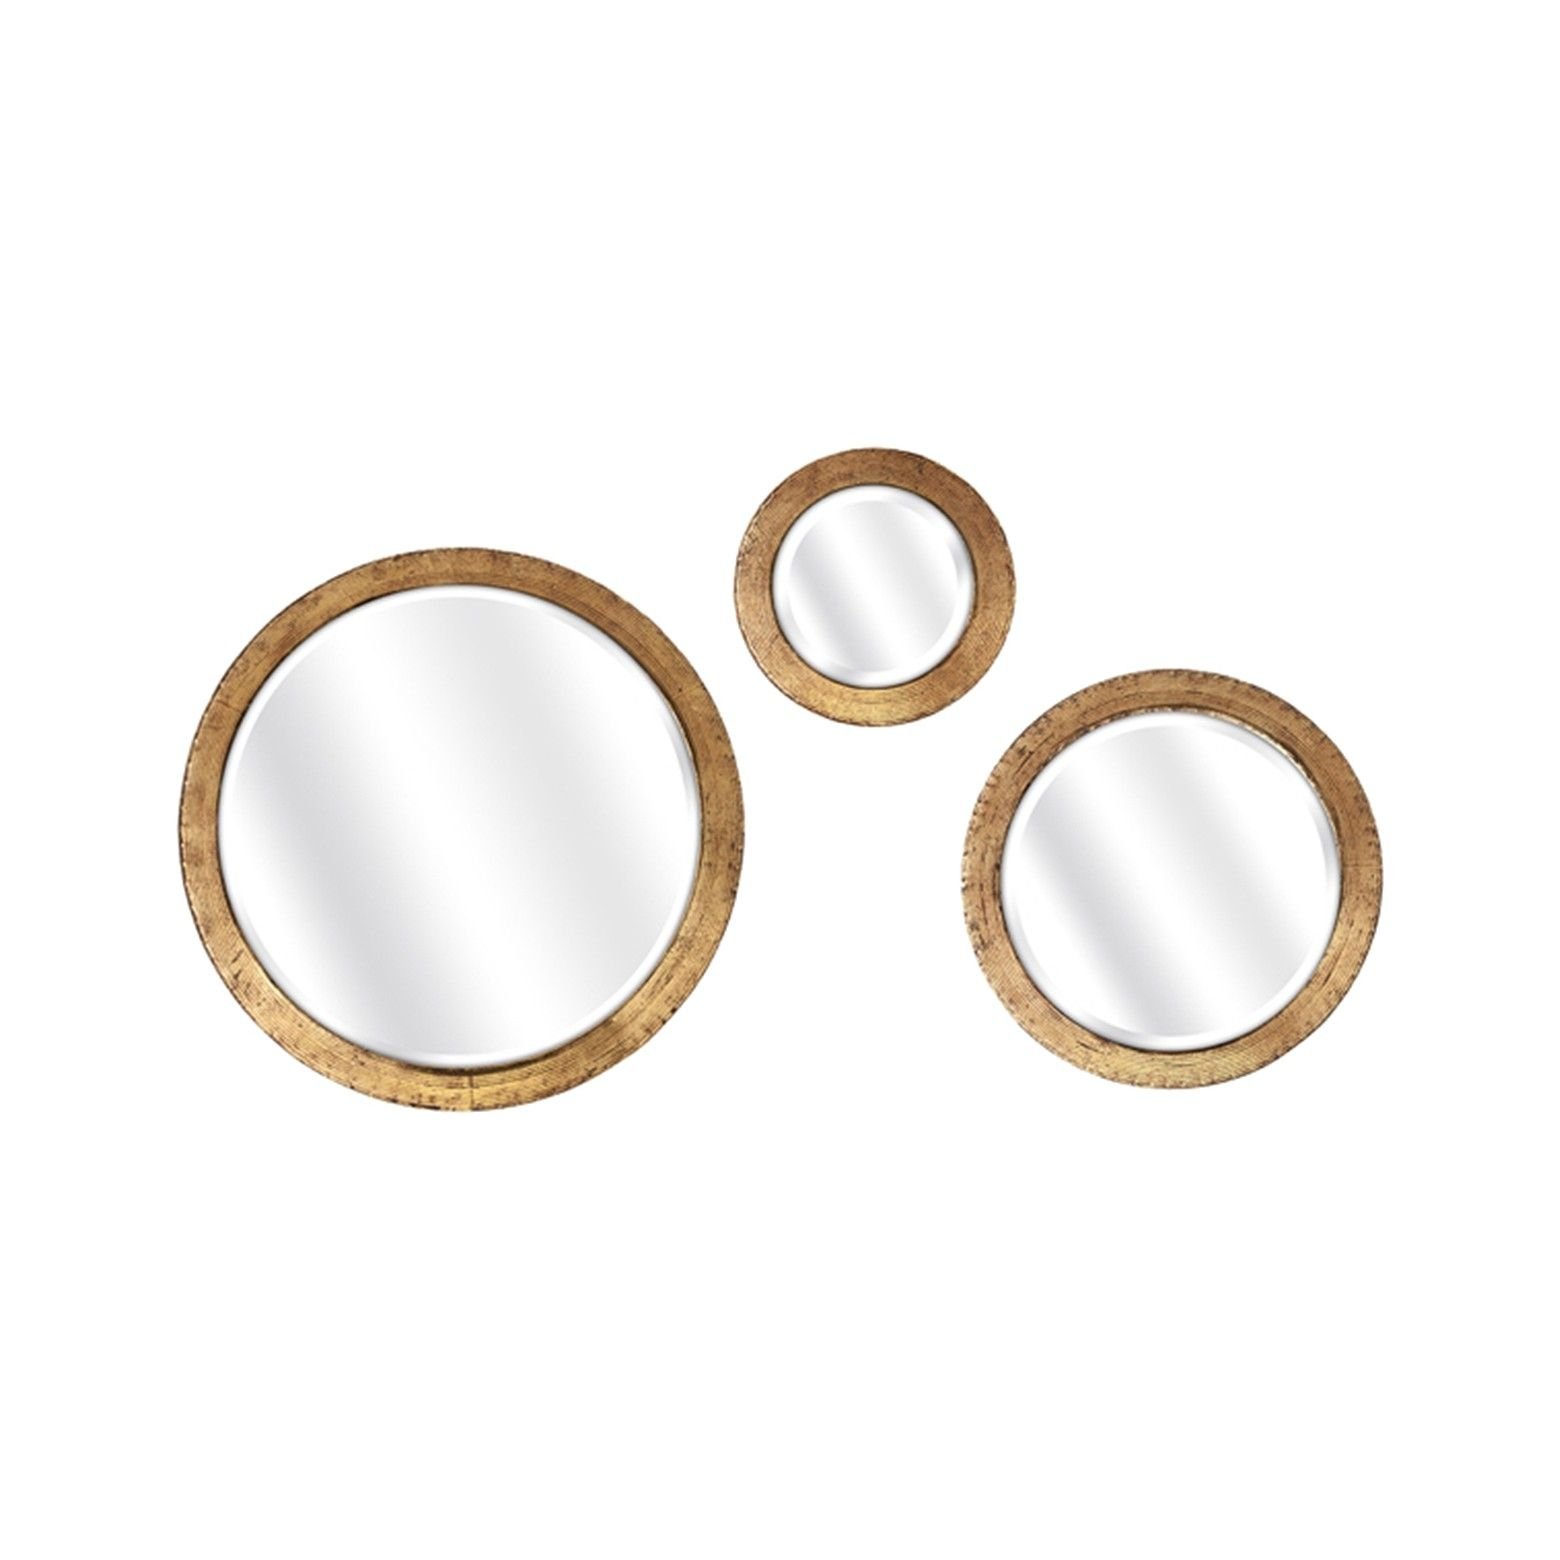 This Aurora 3-piece mirror set is more than a simple home accessory; it's a chic accent piece. The antique gold ring details provide an elegant aesthetic, and the sleek design is easy to hang. These Aurora mirrors have an inspiring combination of design, functionality, and sophistication that will enhance any décor theme with style and charm for many years to come.